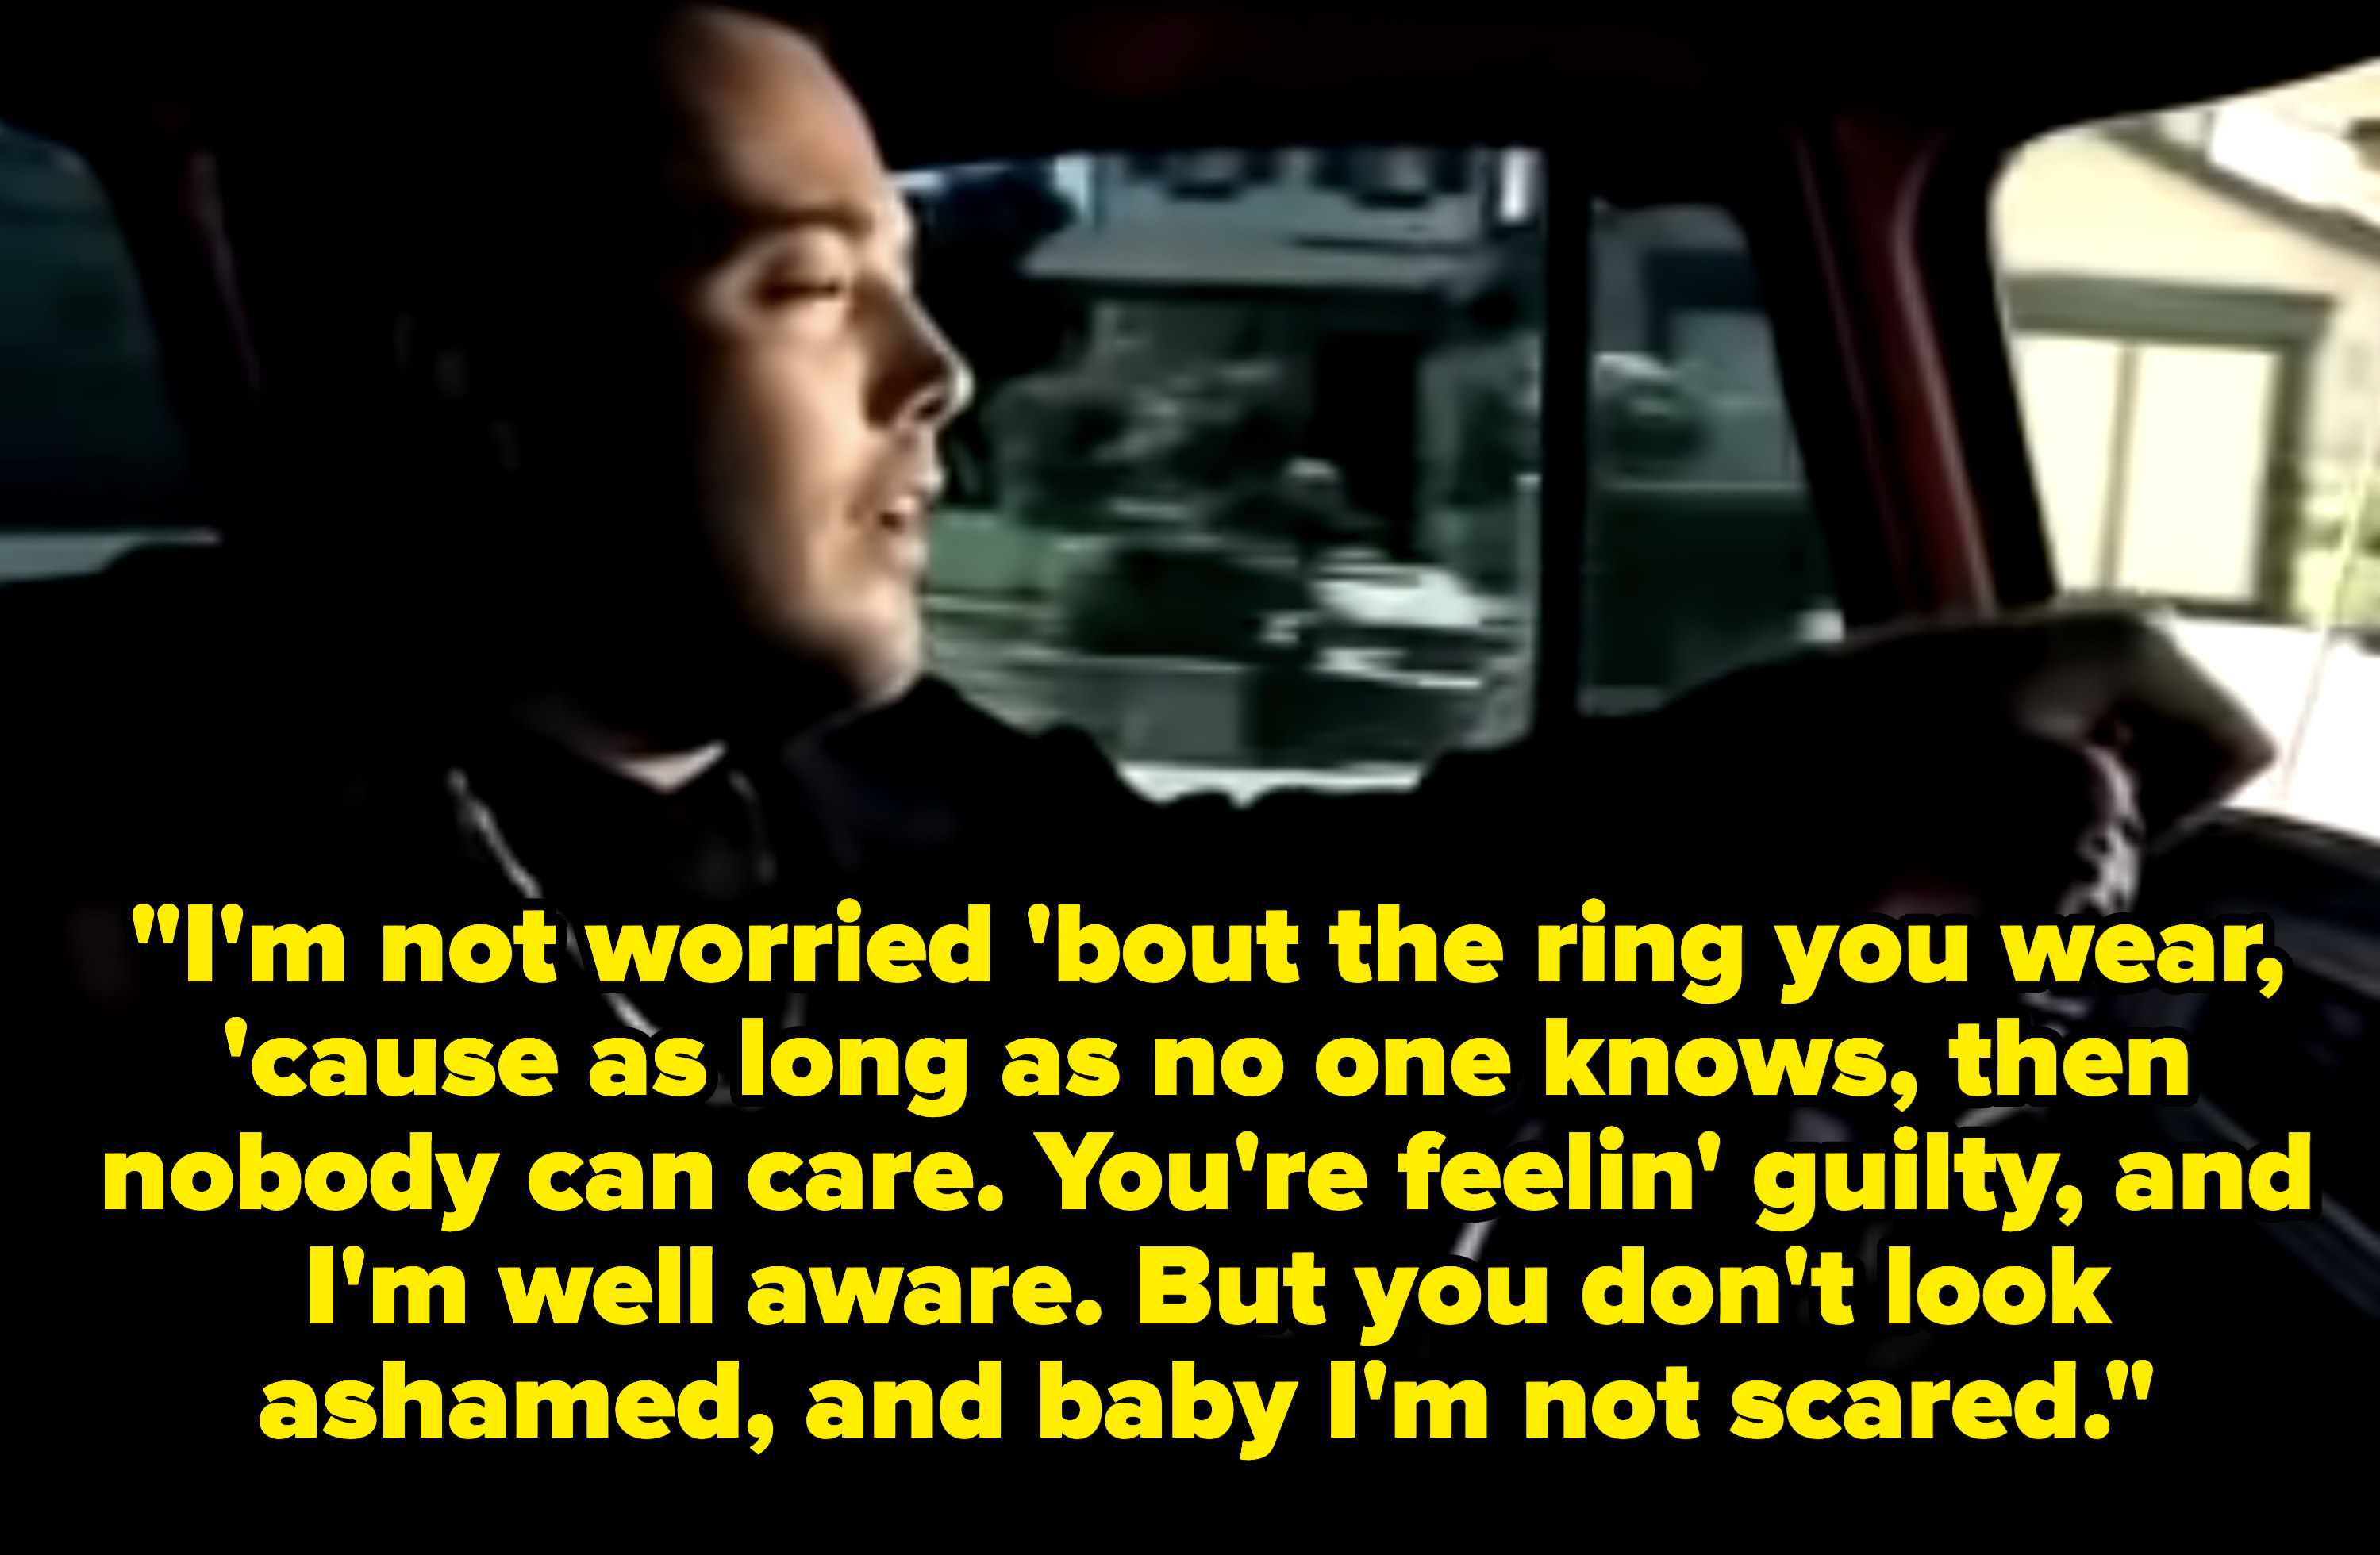 Lyrics: I'm not worried 'bout the ring you wear, 'cause as long as no one knows, then nobody can care. You're feelin' guilty, and I'm well aware. But you don't look ashamed, and baby I'm not scared